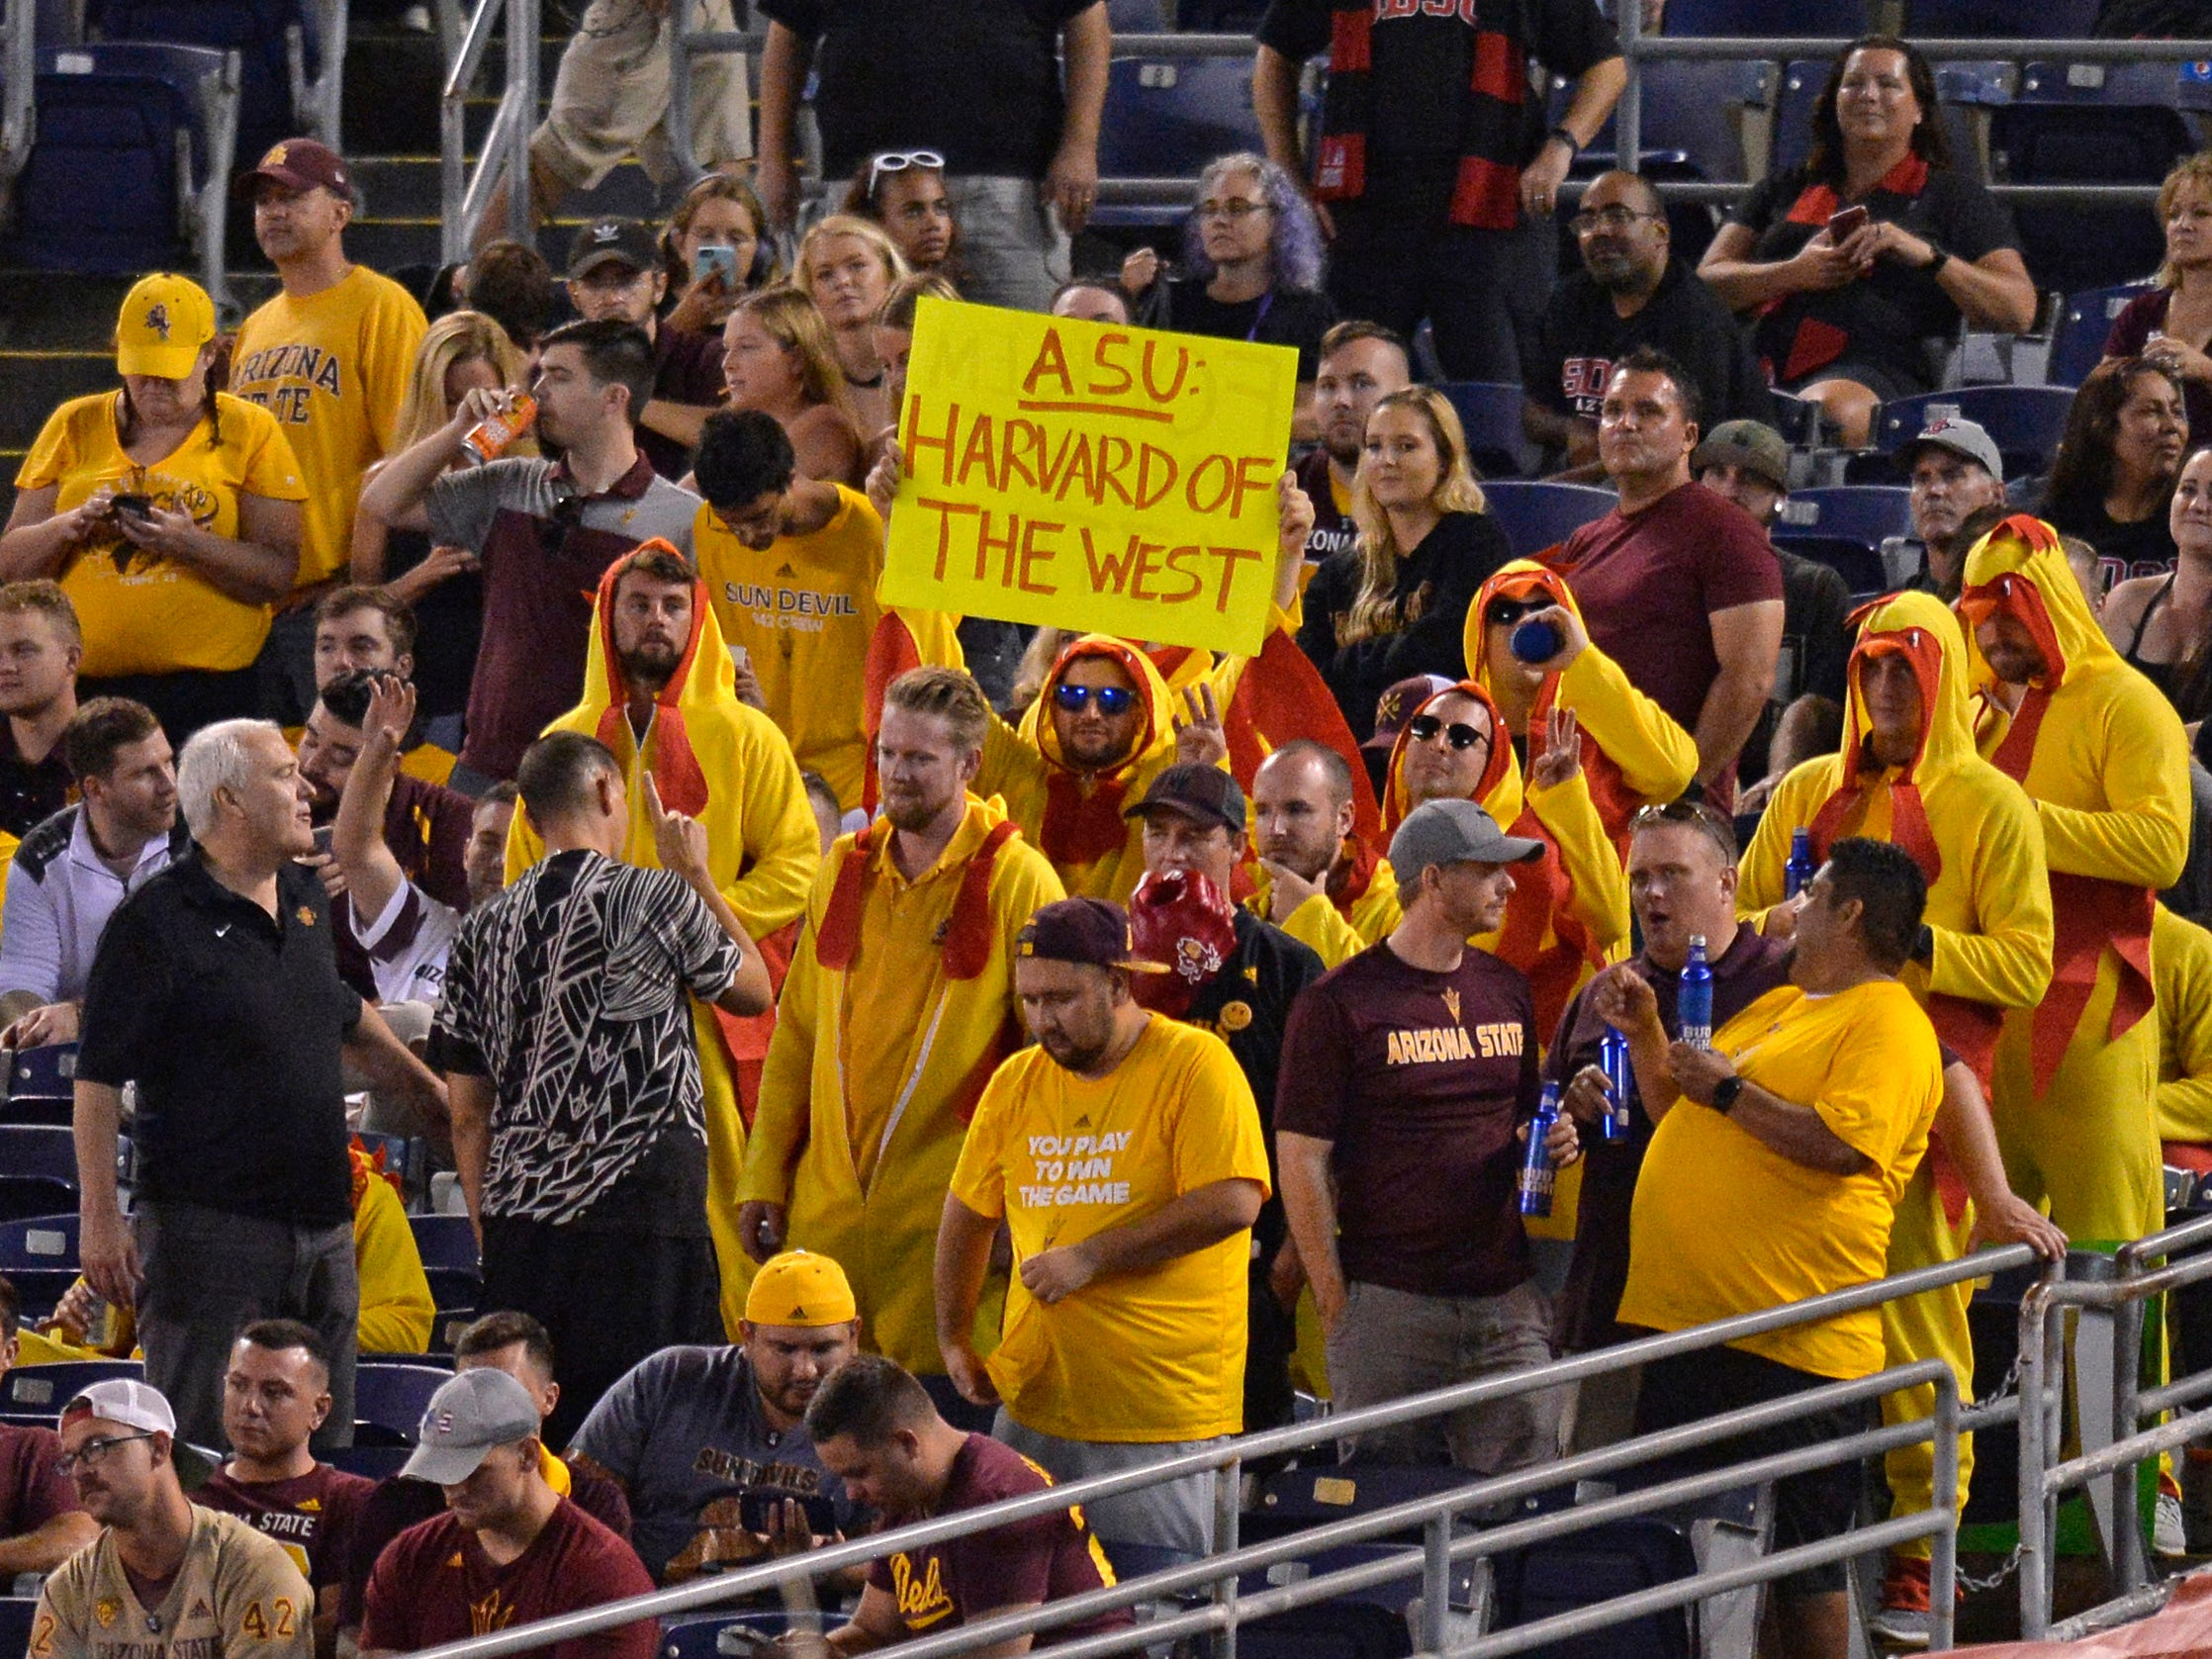 Sep 15, 2018; San Diego, CA, USA; Arizona State Sun Devils fans hold up a sign during the second quarter against the San Diego State Aztecs at SDCCU Stadium. Mandatory Credit: Jake Roth-USA TODAY Sports